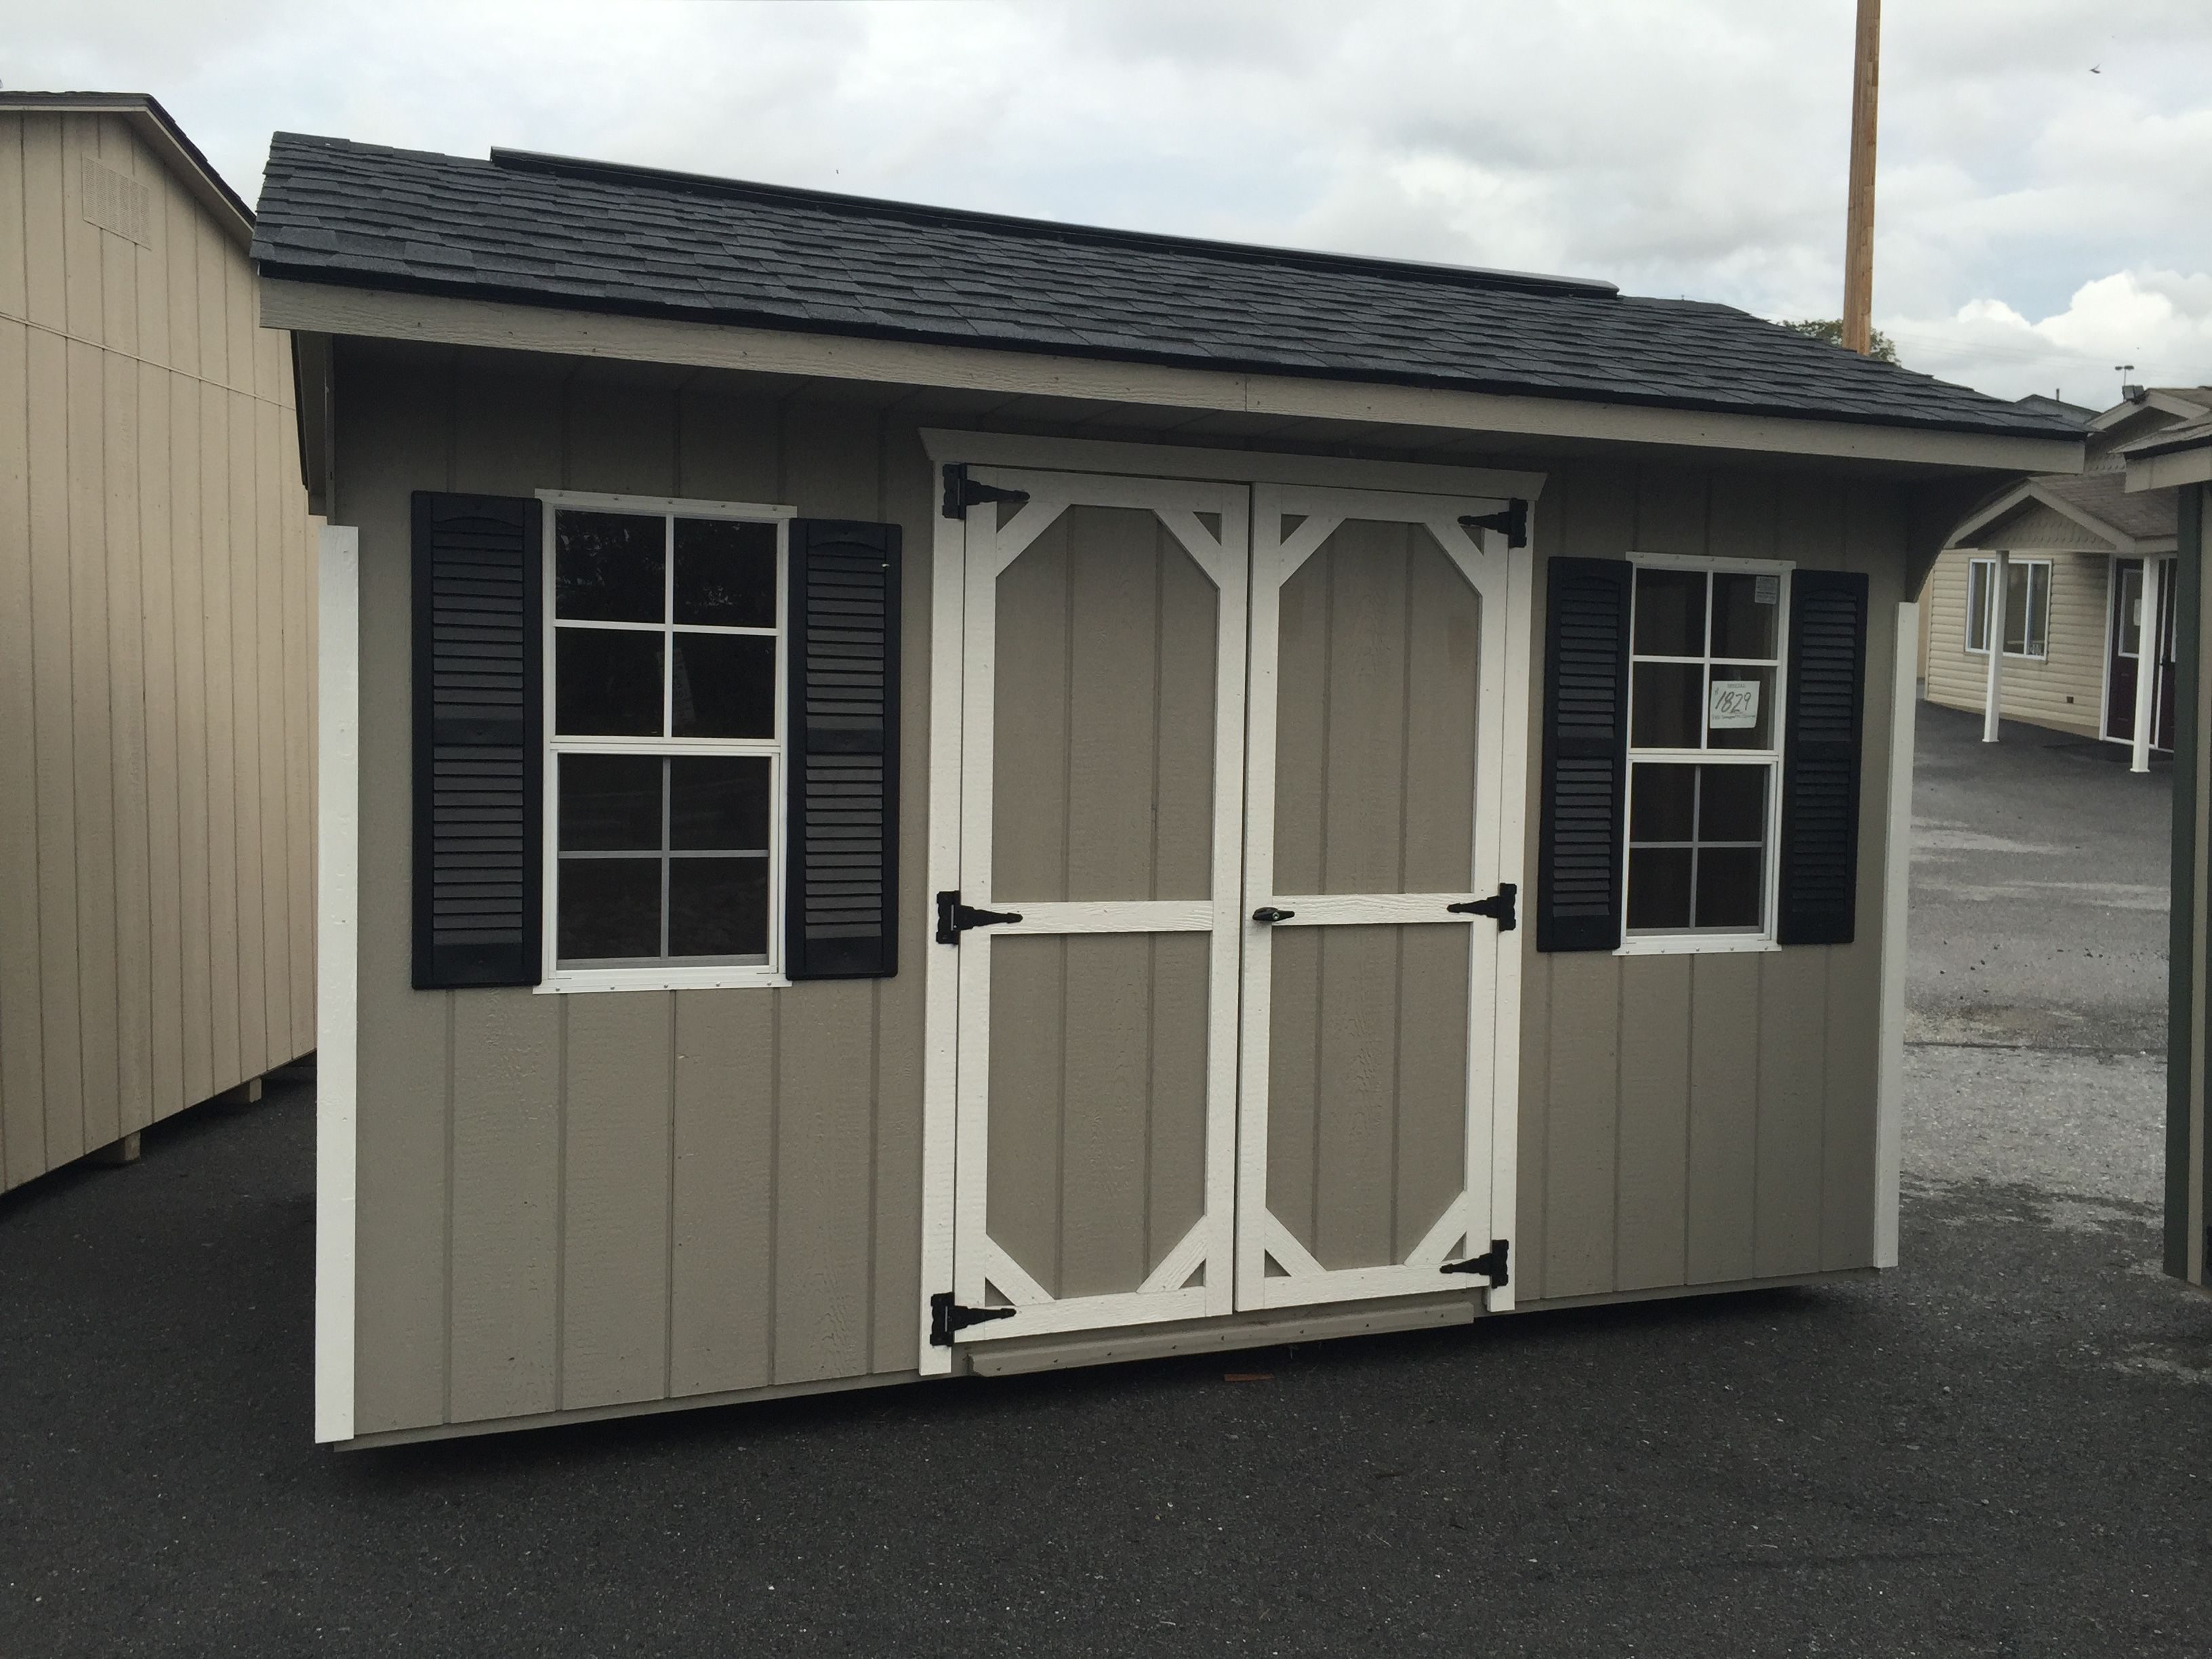 8x12 Carriage Shed $1829 In stock and ready for quick delivery